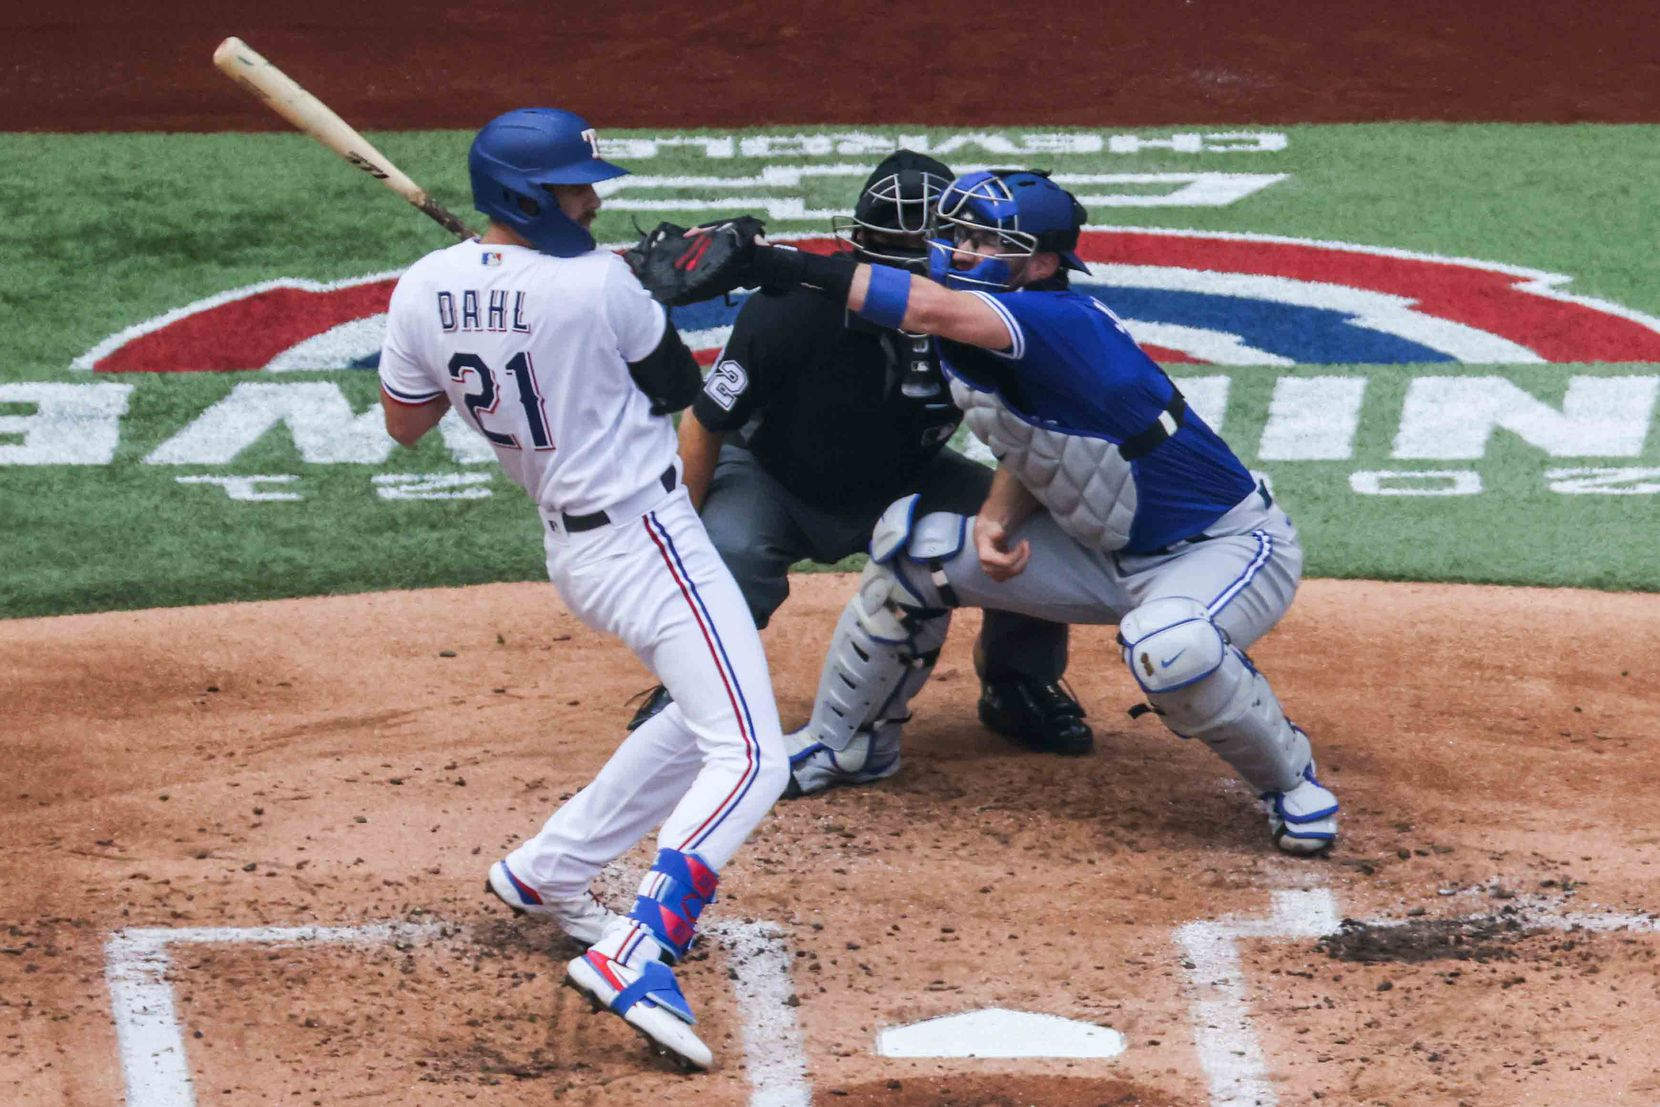 Texas Rangers's David Dahl No.21  dodges a ball in home plate at the Globe Life Field during opening day against Toronto Blue Jays in Arlington, Texas on Monday, April 5, 2021. (Lola Gomez/The Dallas Morning News)